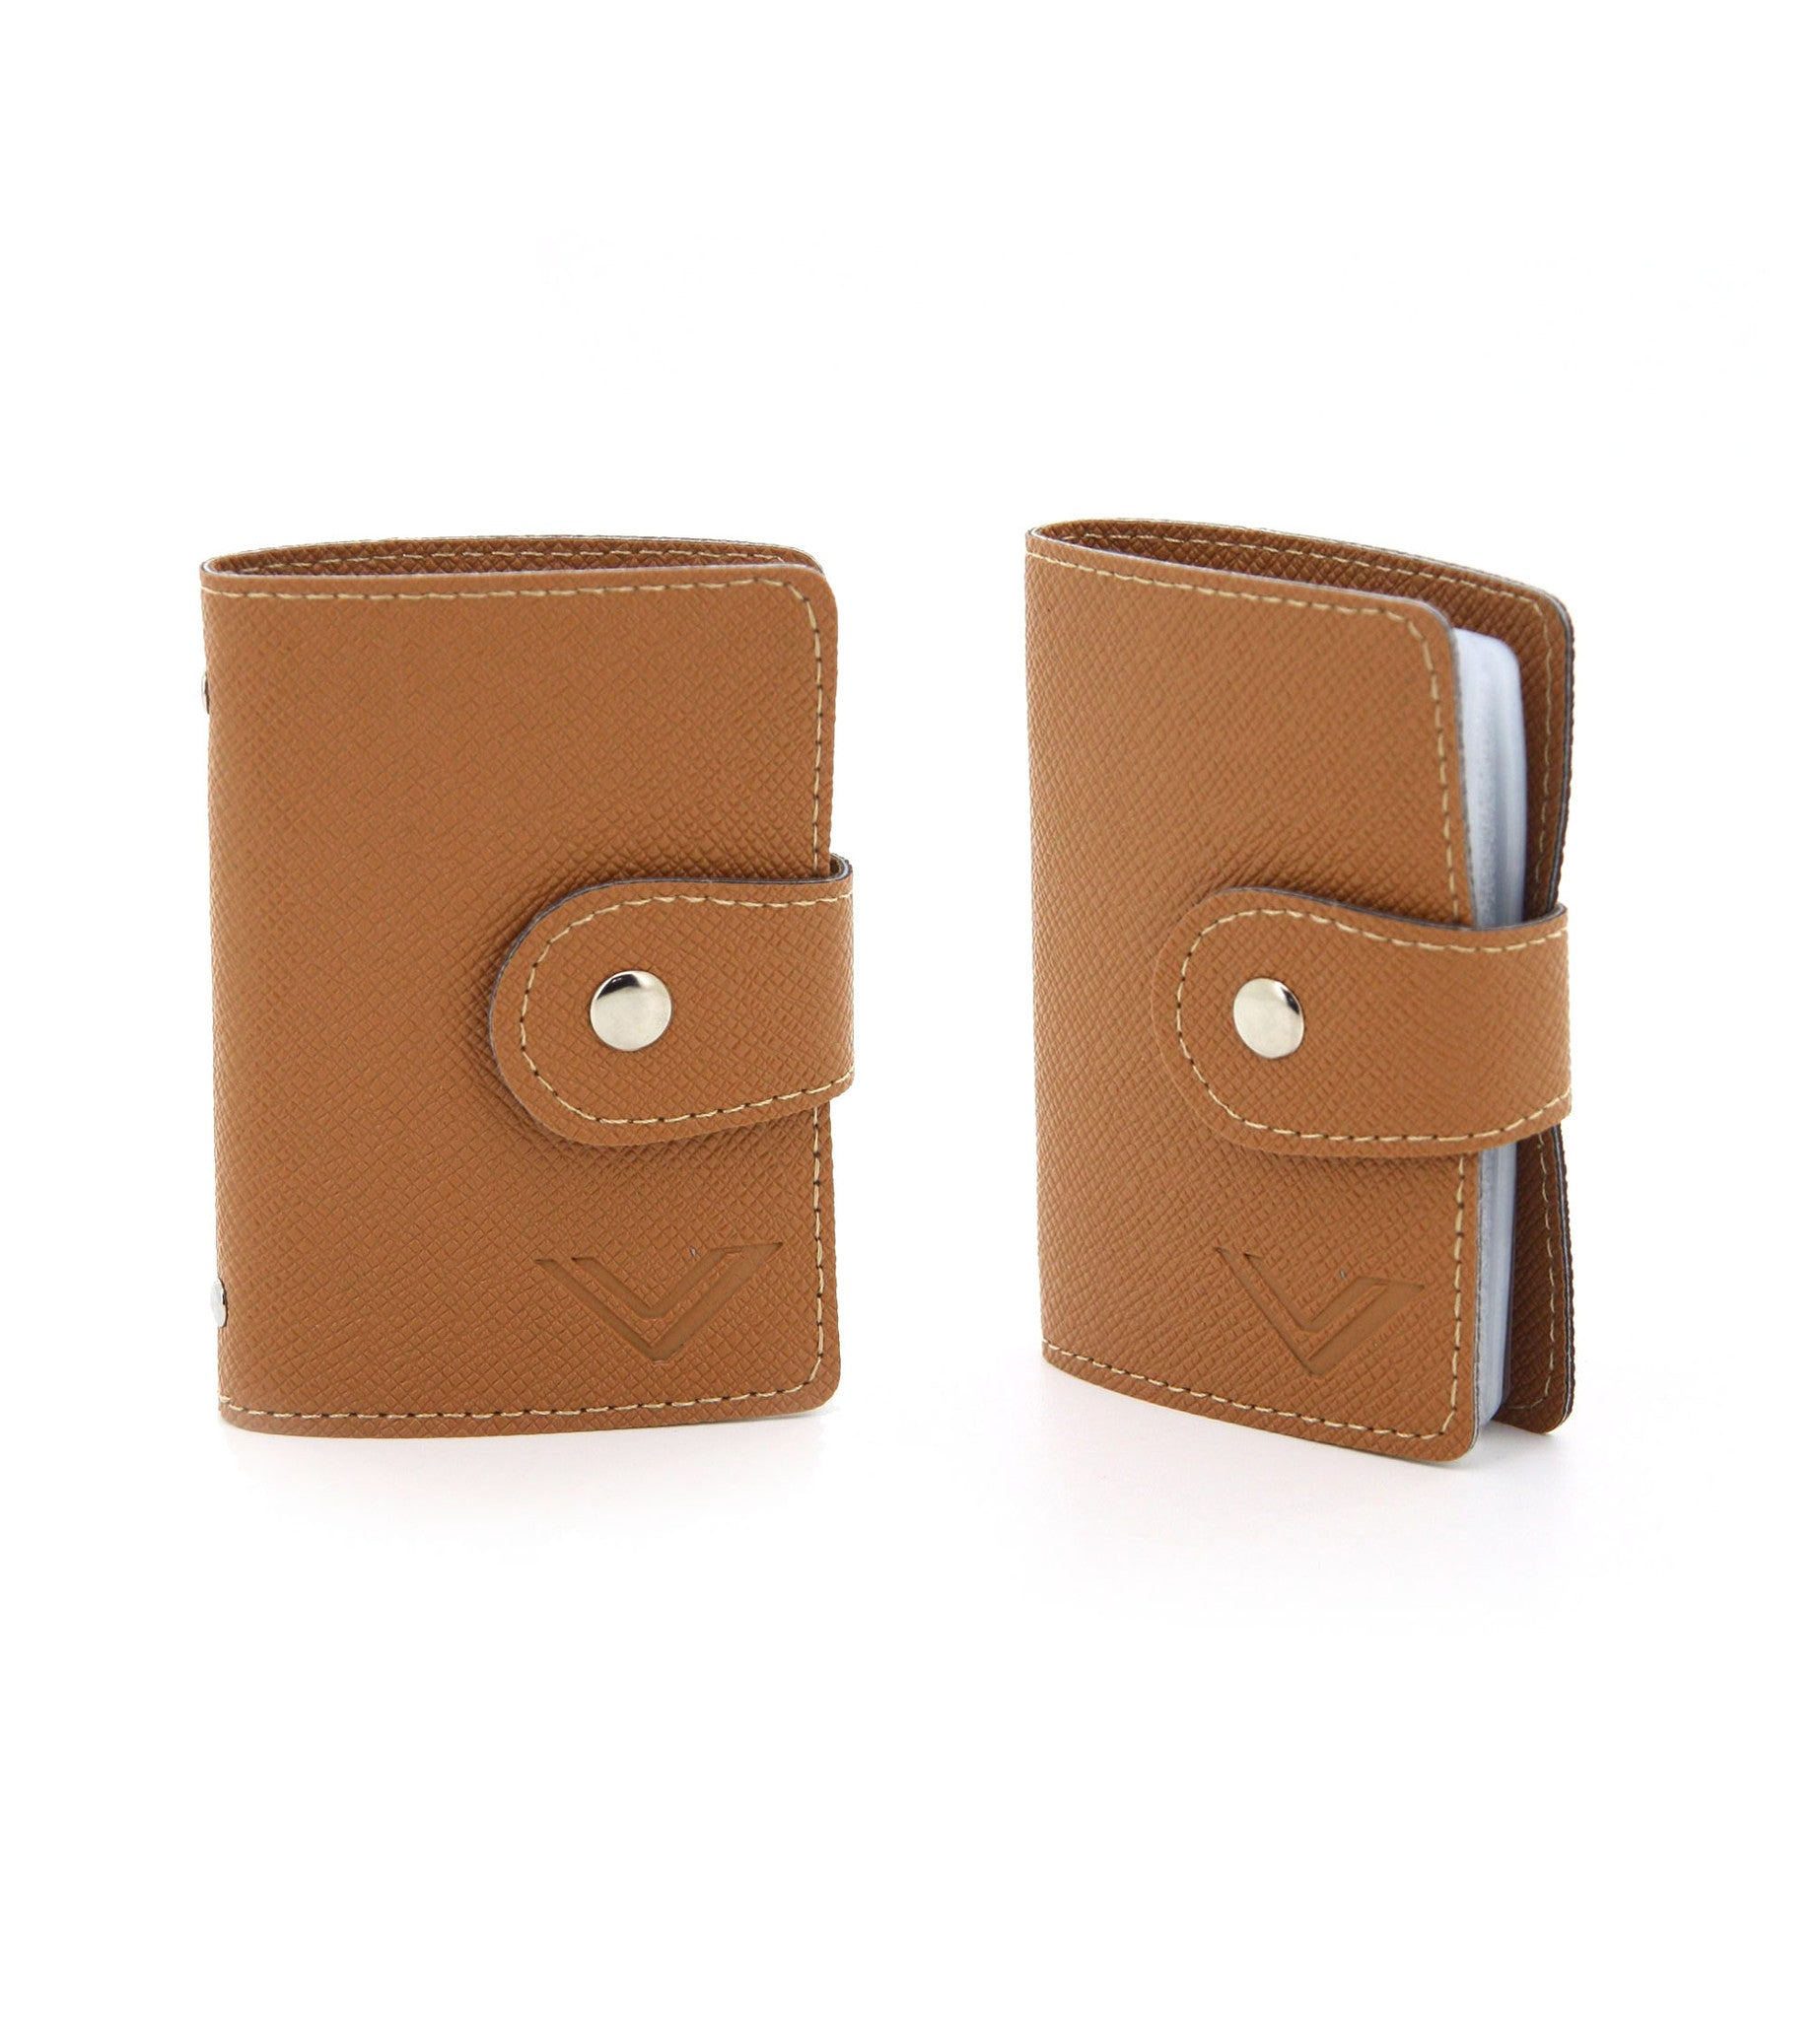 C14SP518BRx2 Cardholder Pair (Brown)